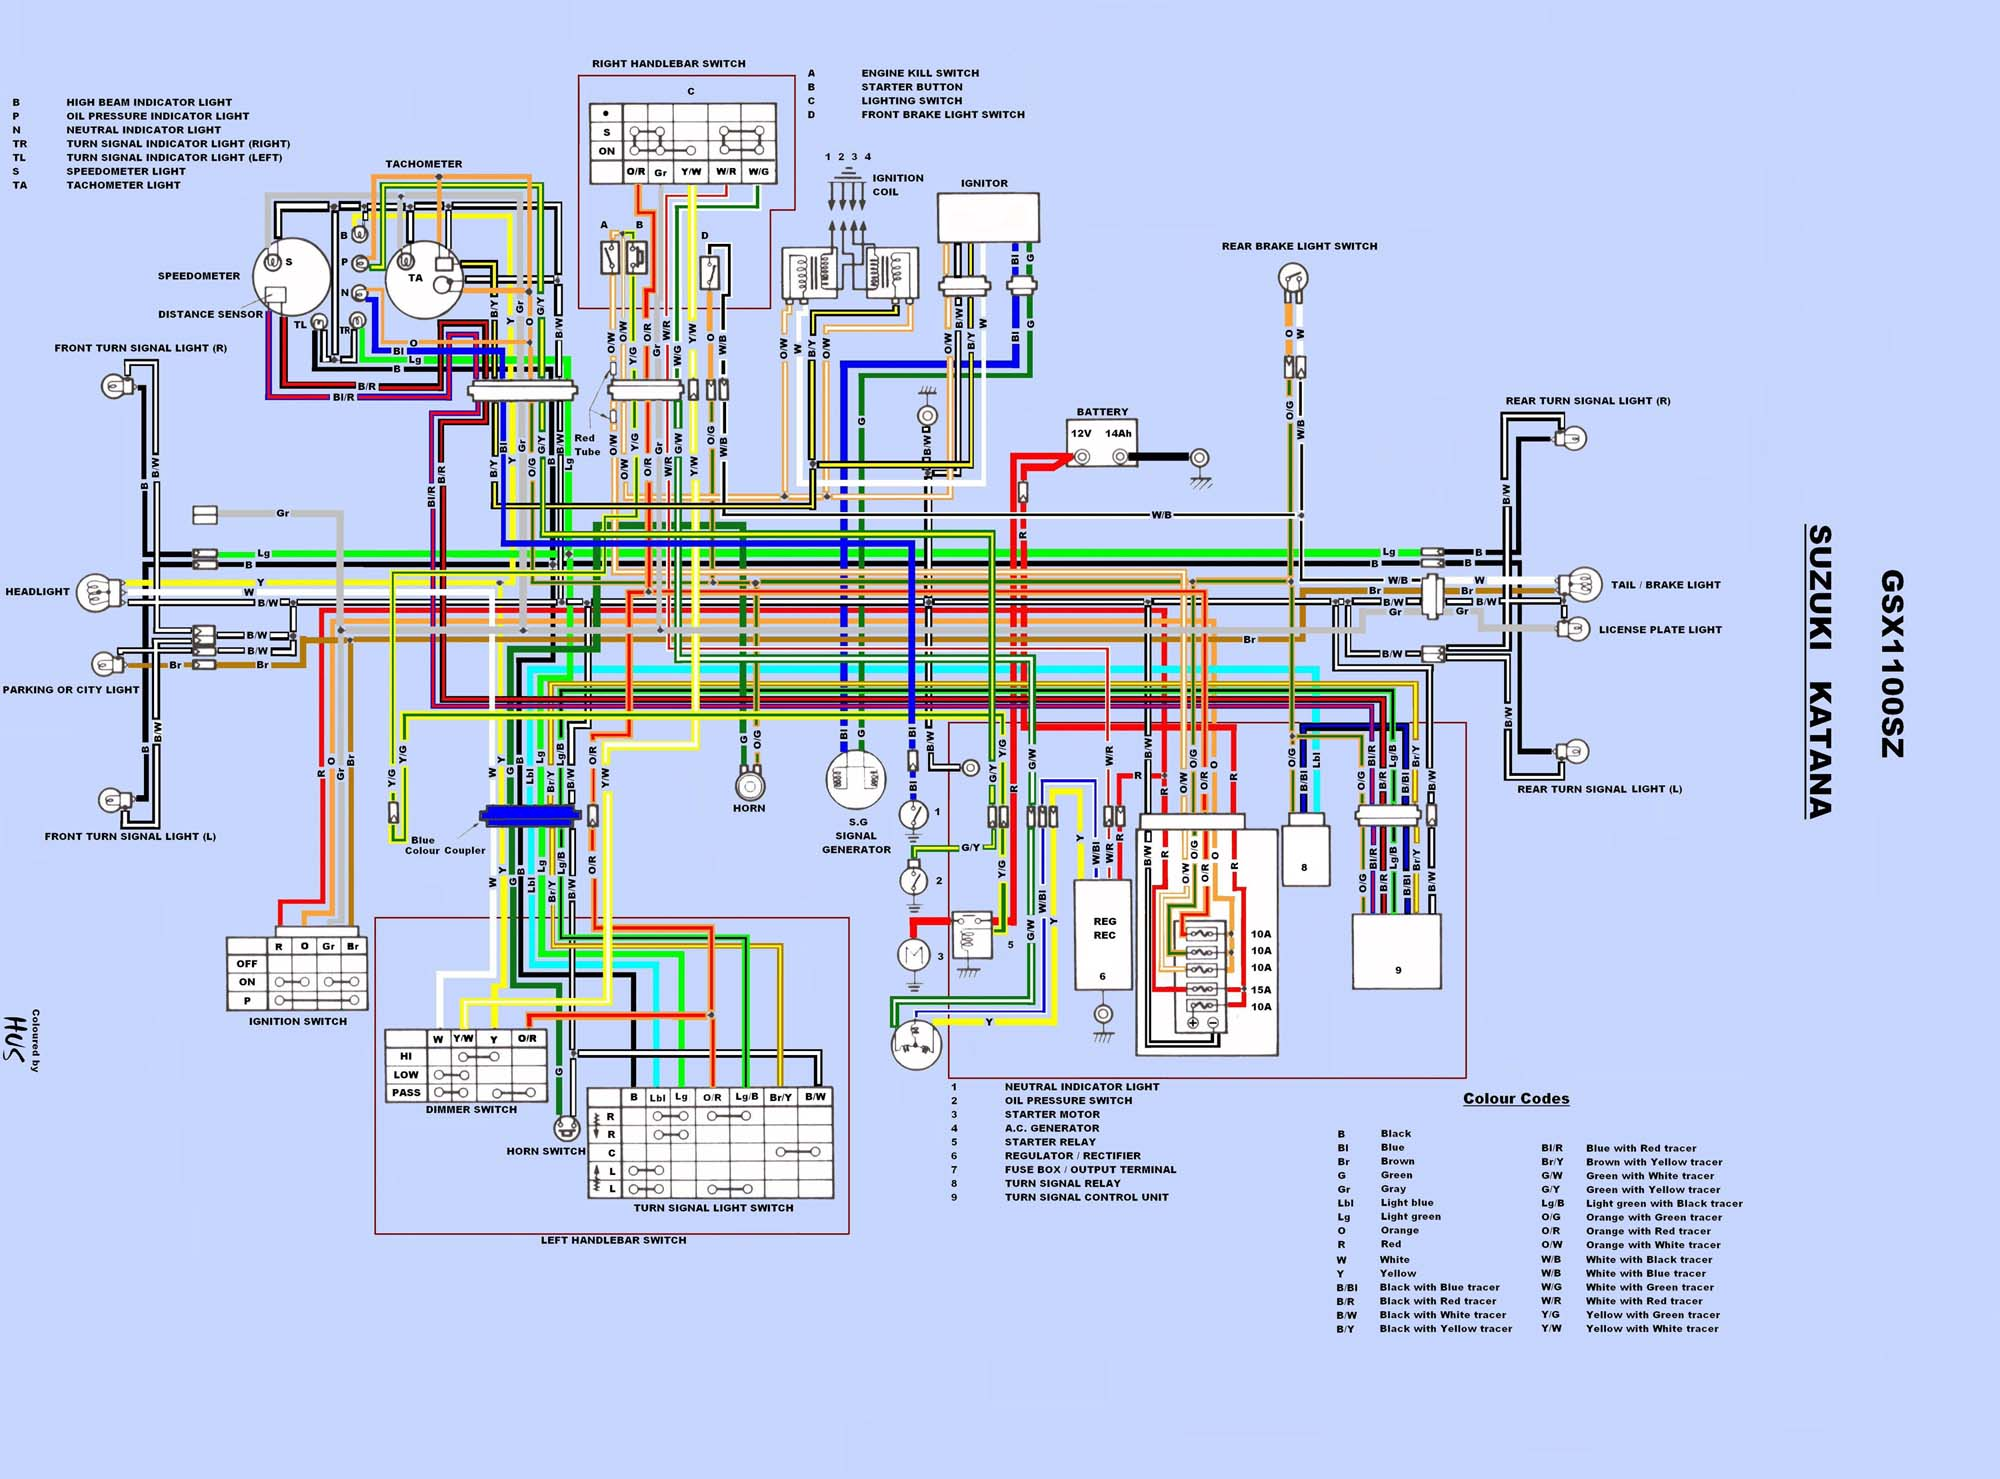 Suzuki Drz 400 Wiring Diagram Printable Wiring Diagram Schematic